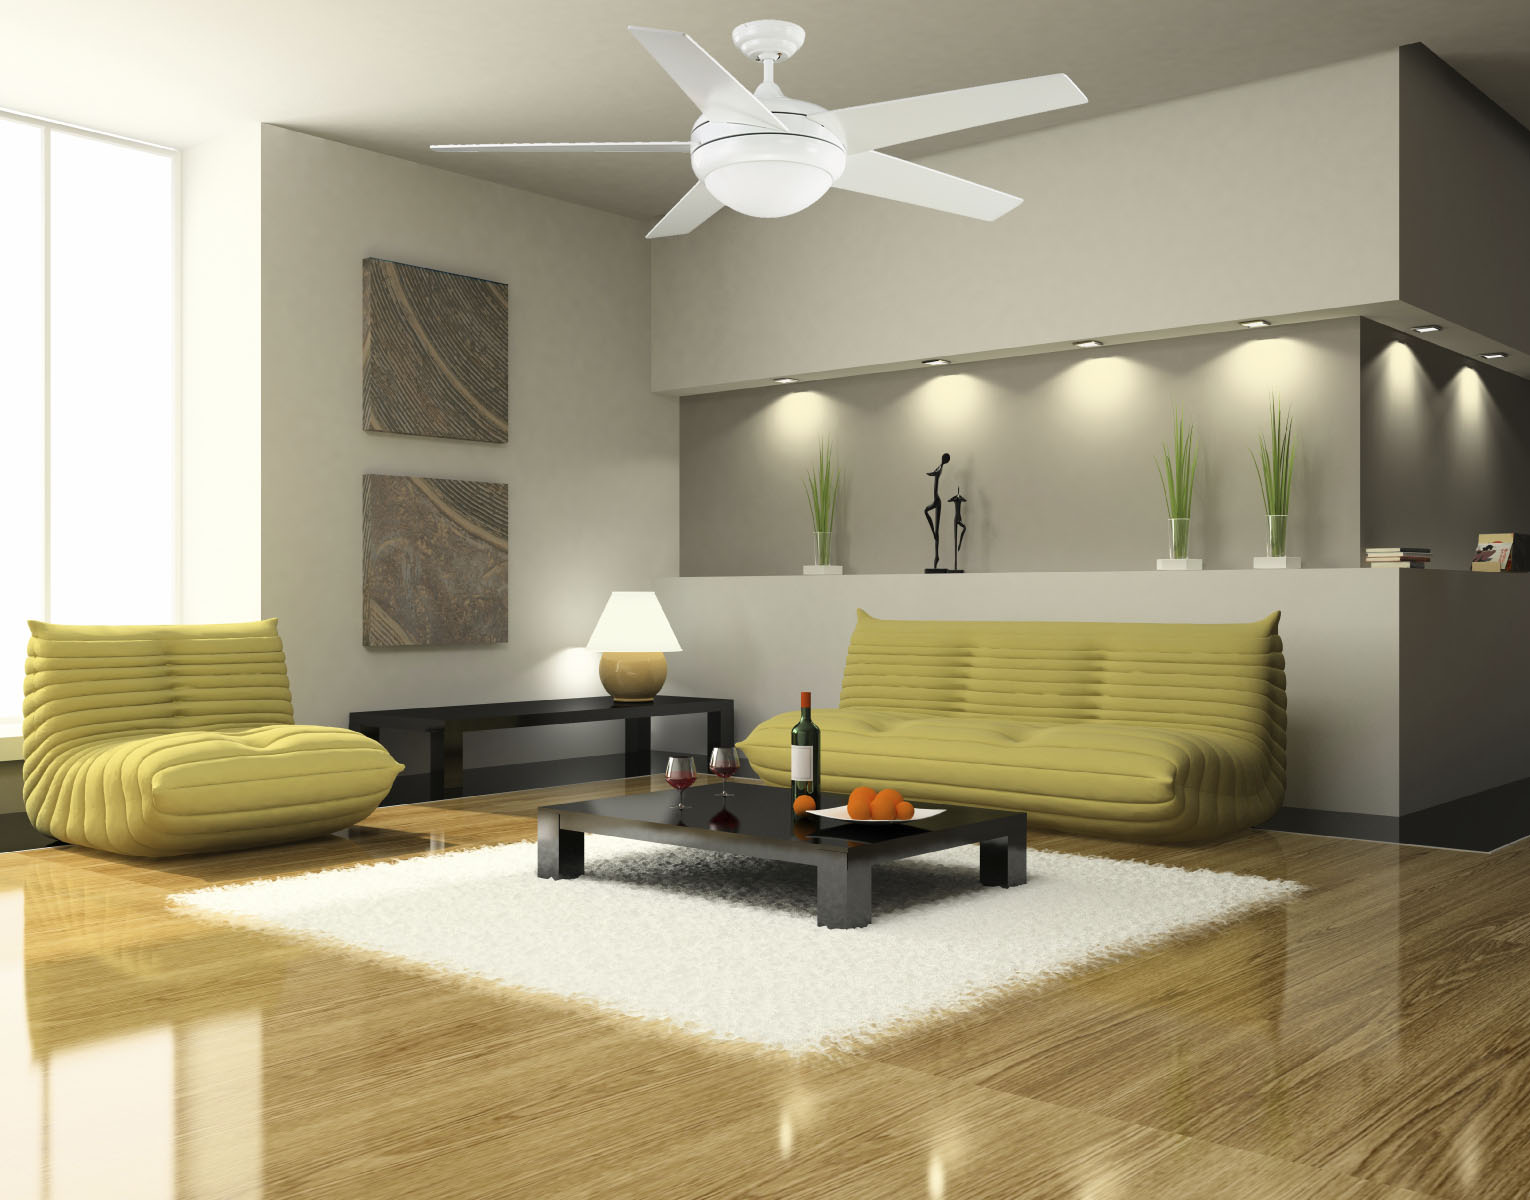 Cozy Togo Sofas and Low Black Coffee Table in Open Sitting Room with Modern Ceiling Fans